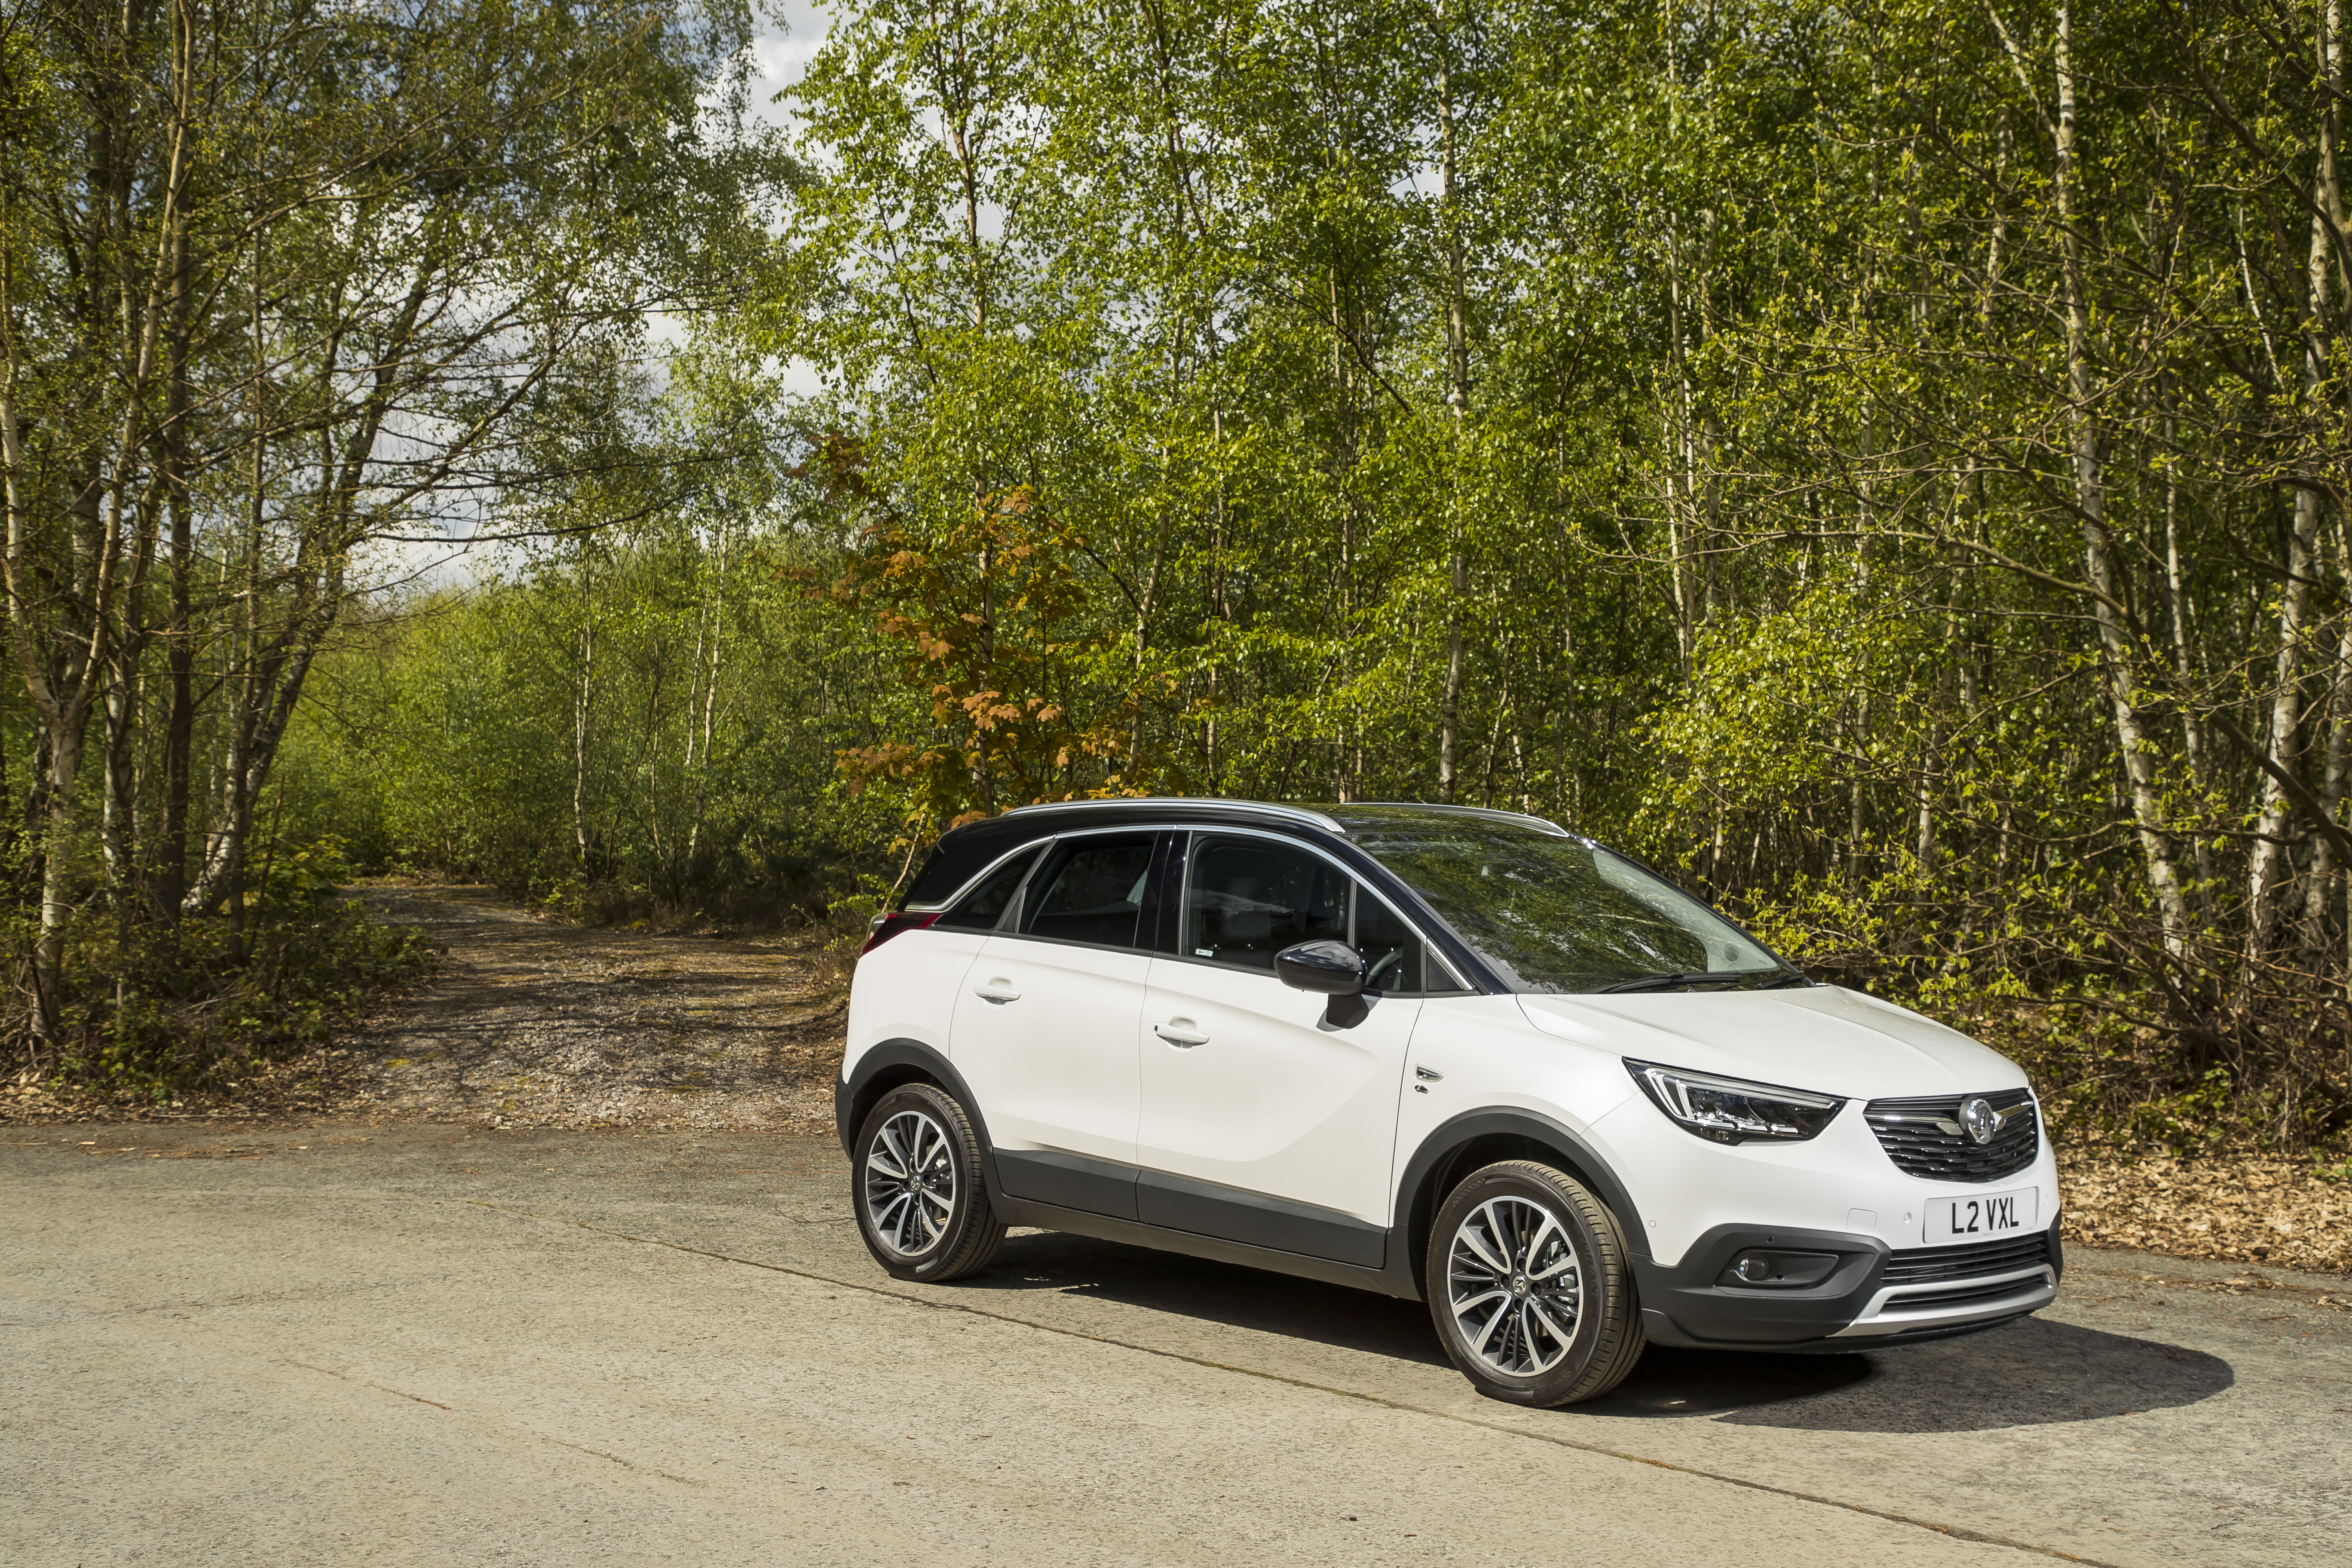 The Crossland X takes on all manner of rivals